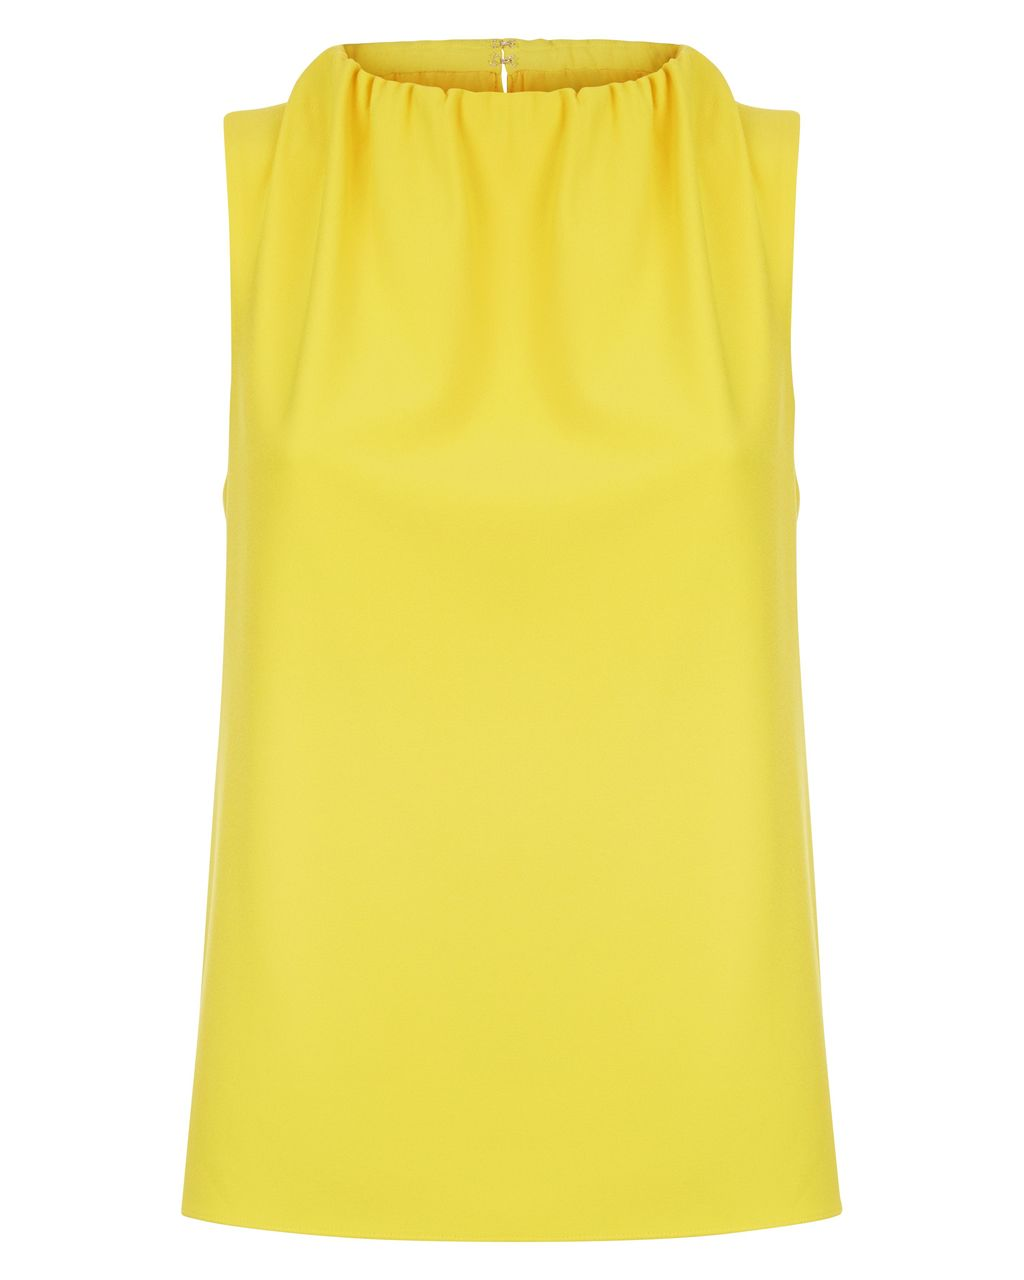 Ruched Neck Sleeveless Top, Yellow - pattern: plain; sleeve style: sleeveless; predominant colour: yellow; occasions: casual, creative work; length: standard; style: top; fibres: cotton - 100%; fit: straight cut; neckline: crew; sleeve length: sleeveless; texture group: cotton feel fabrics; pattern type: fabric; season: s/s 2016; wardrobe: highlight